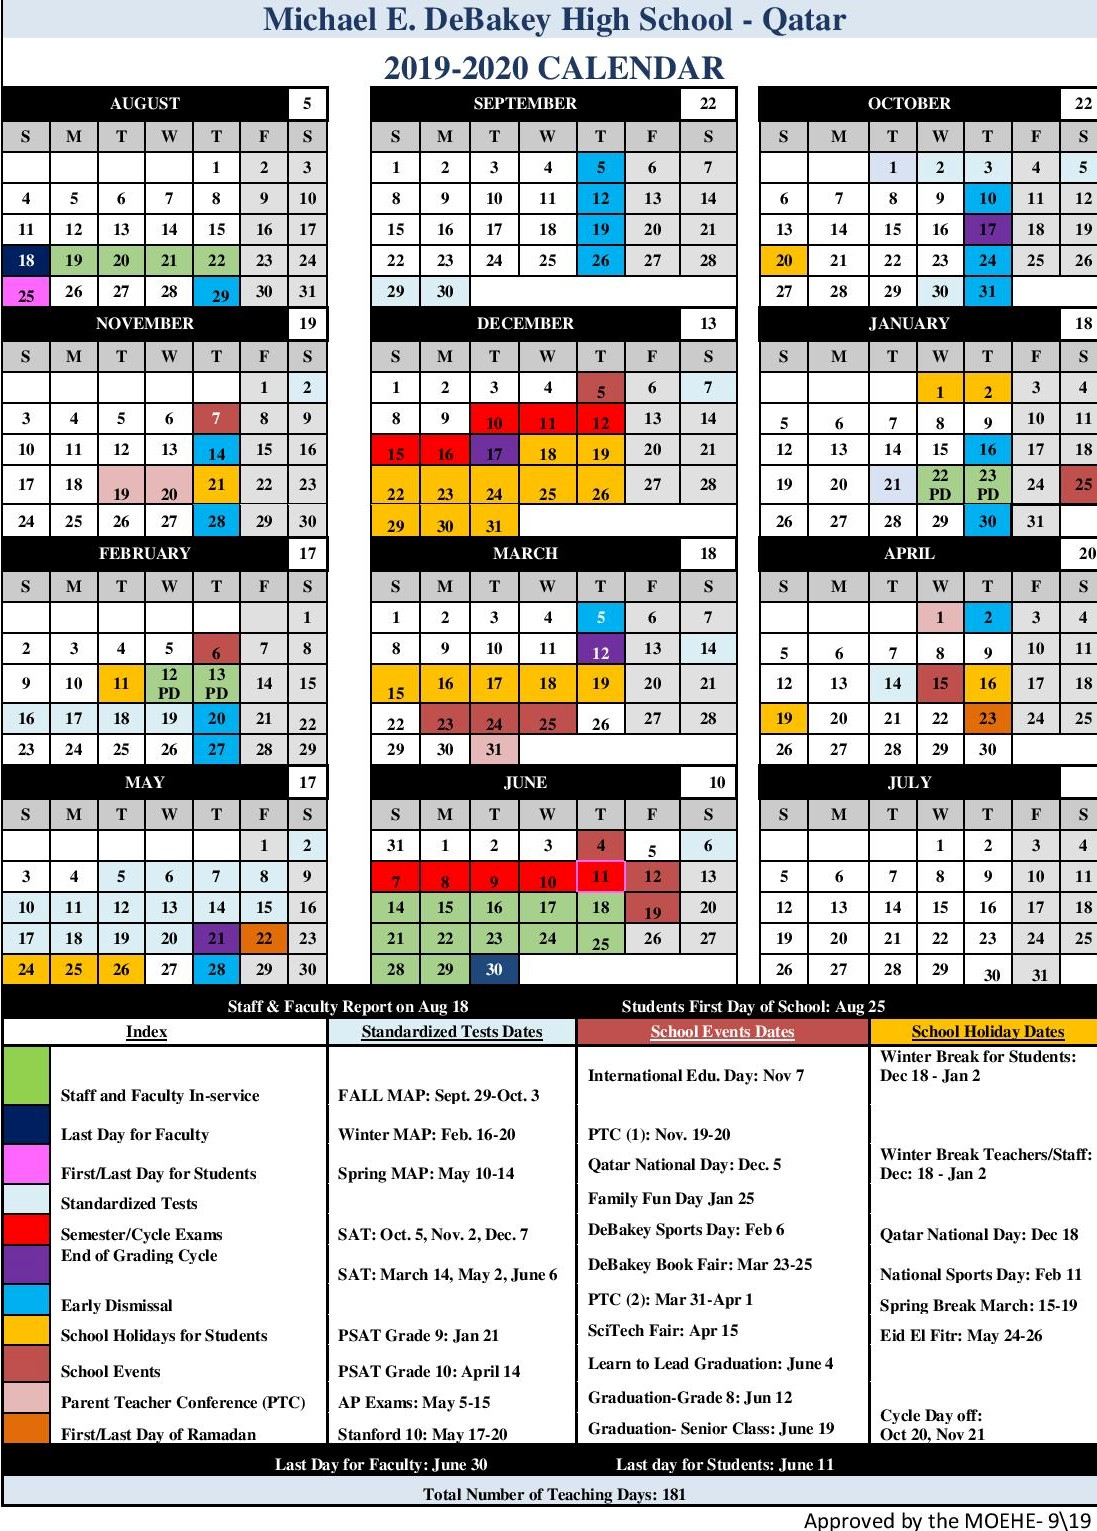 Academic Calendar – Michael E. Debakey High School – Qatar for Debakey High School Calendar